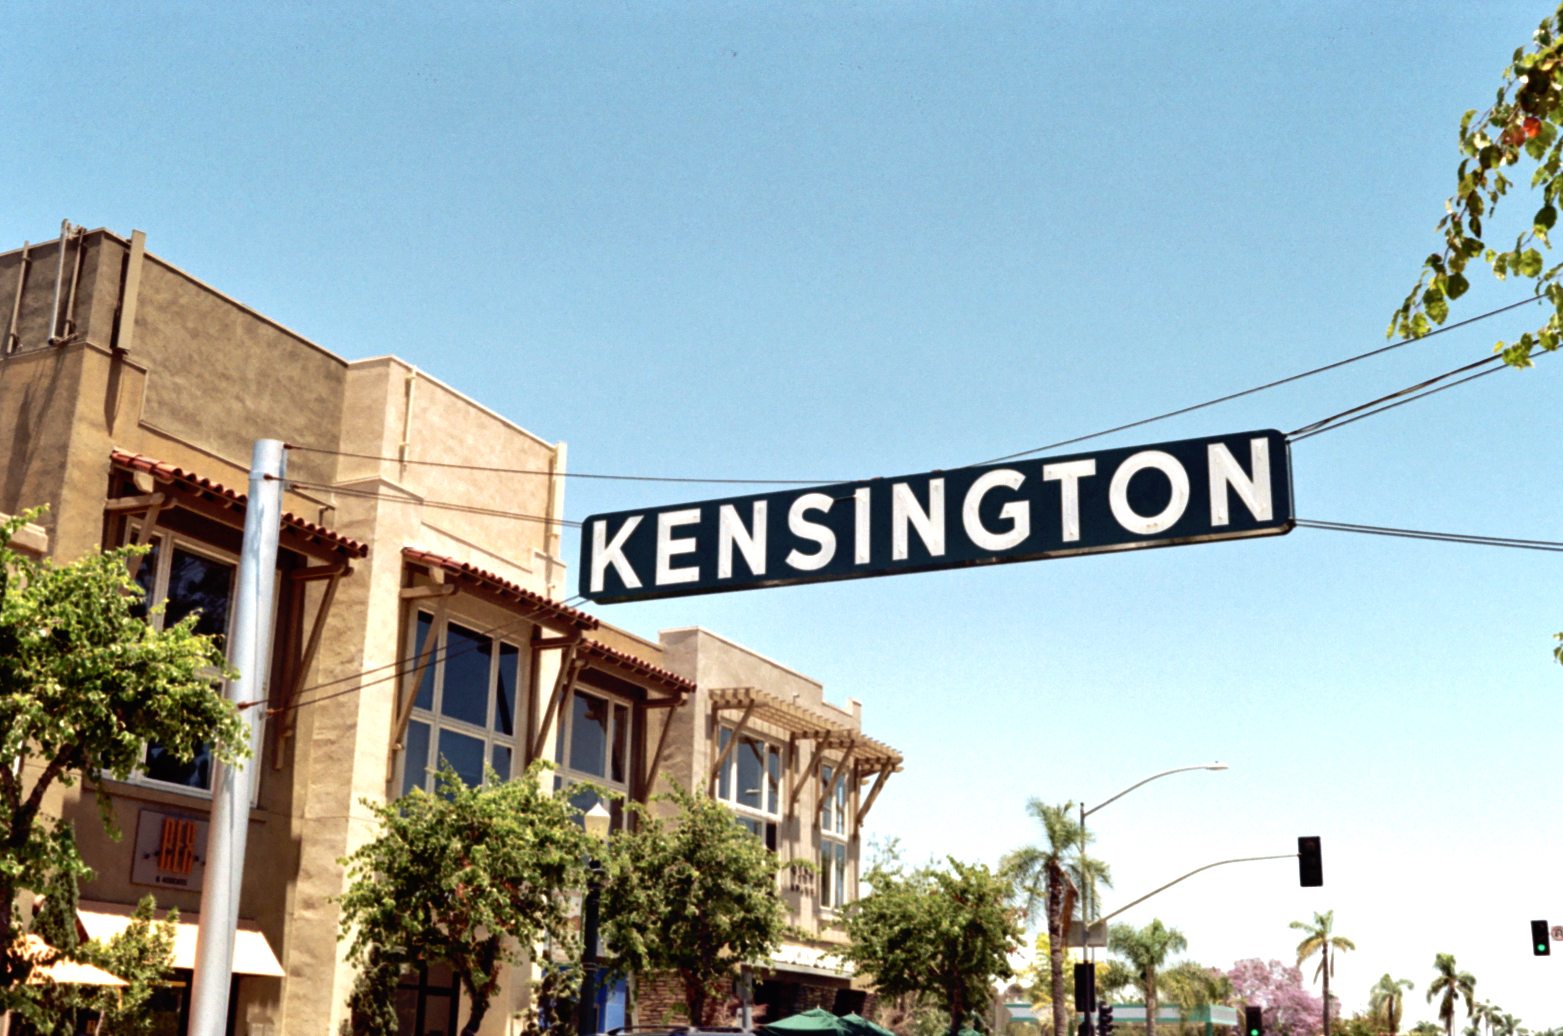 Kensington Real Estate for sale